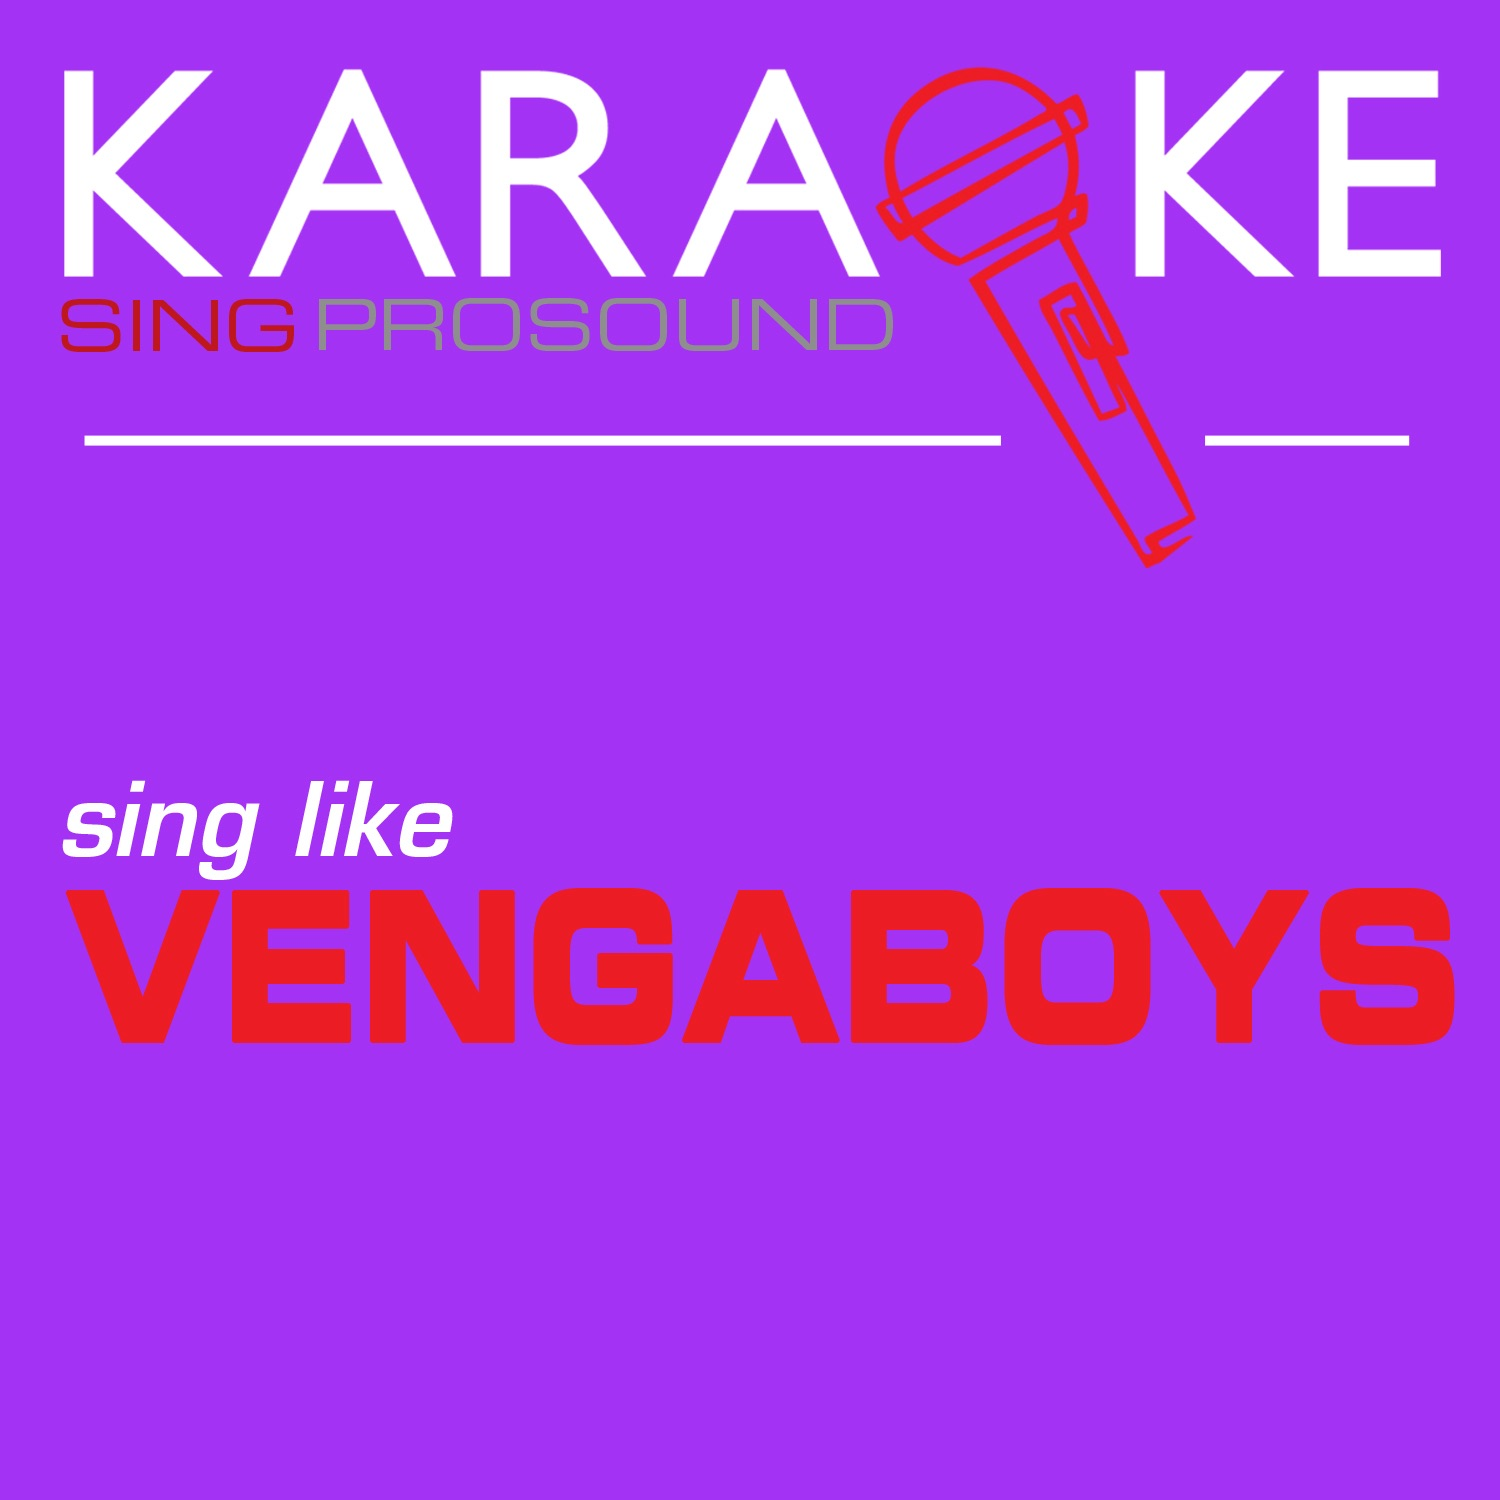 Karaoke in the Style of Vengaboys - EP